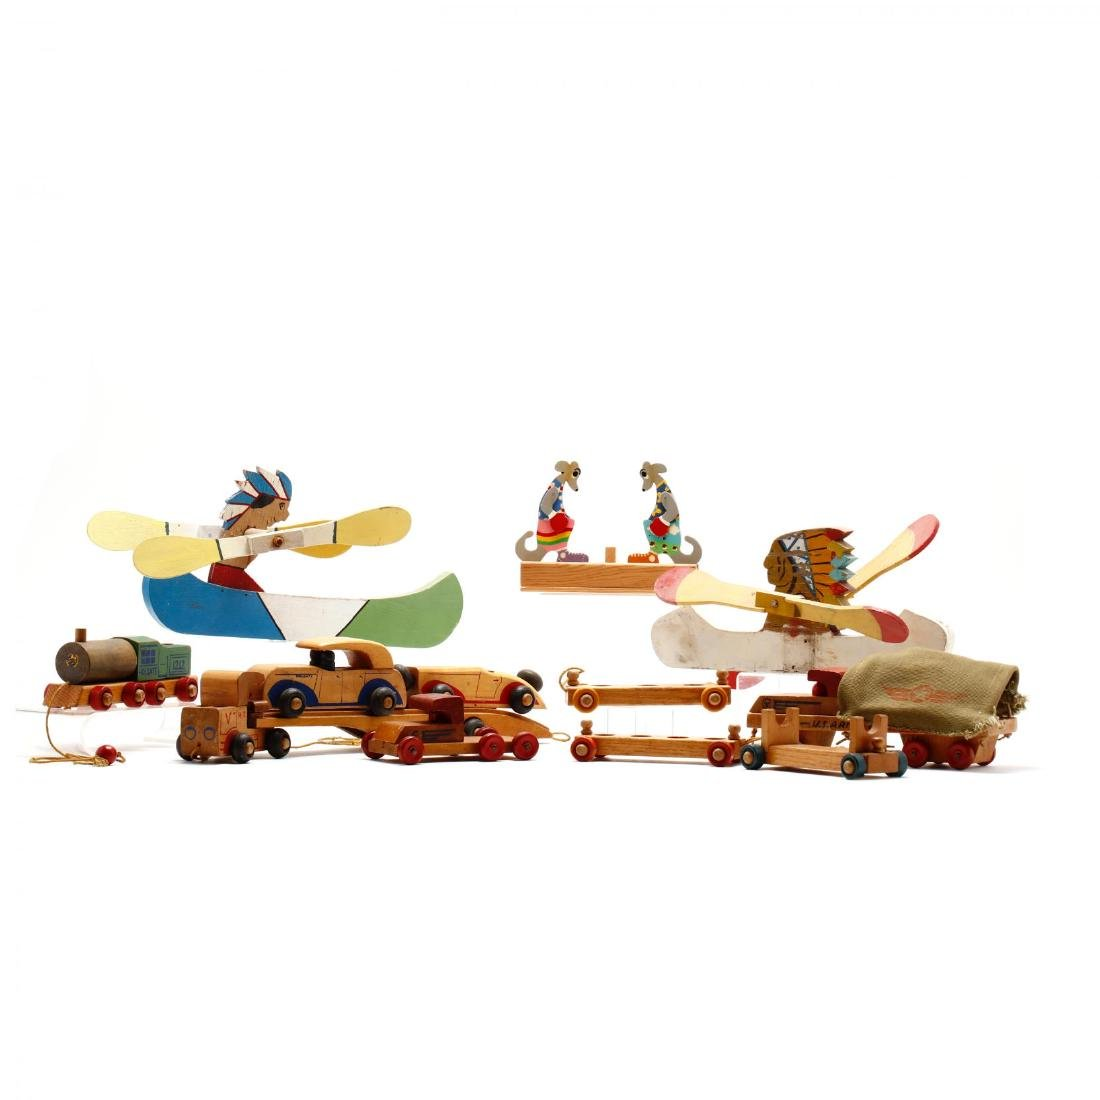 A Group of Vintage Wooden Toys